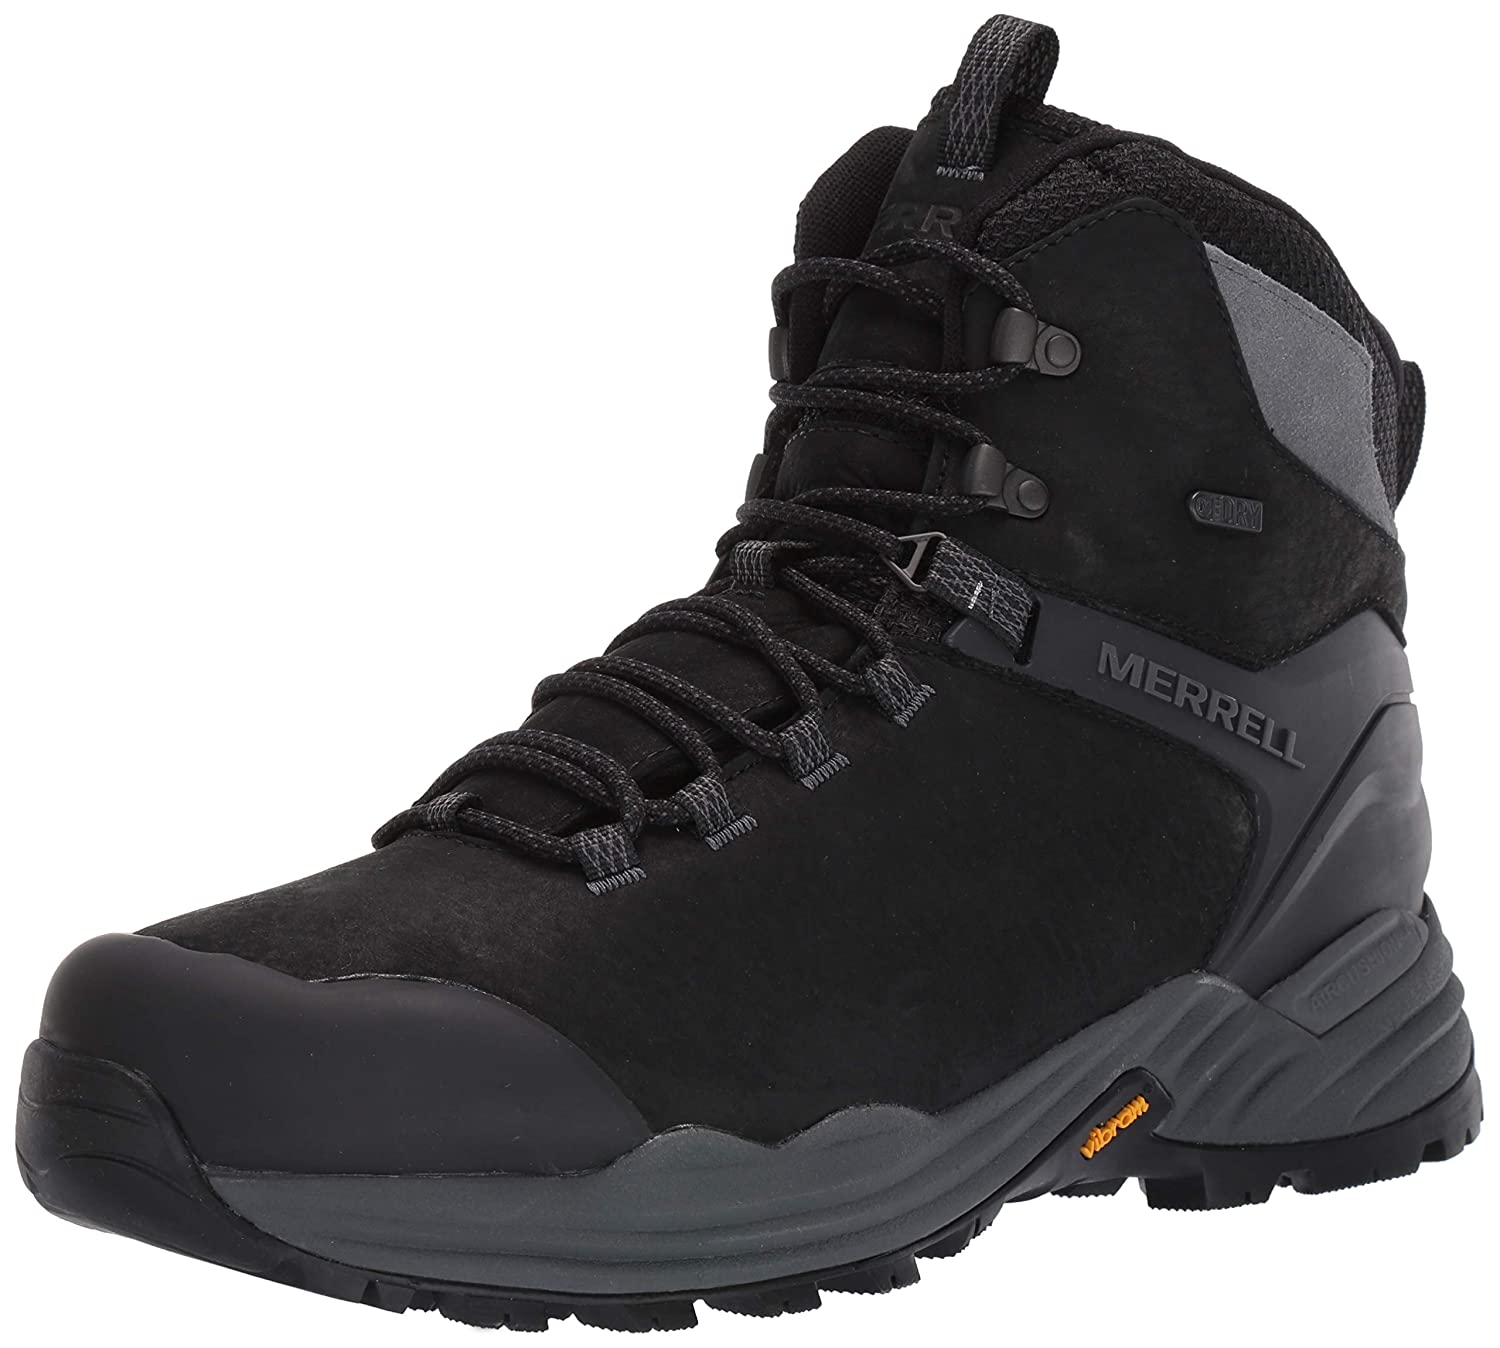 f59adf45bff Merrell Men's Phaserbound 2 Tall Waterproof Hiking Shoe